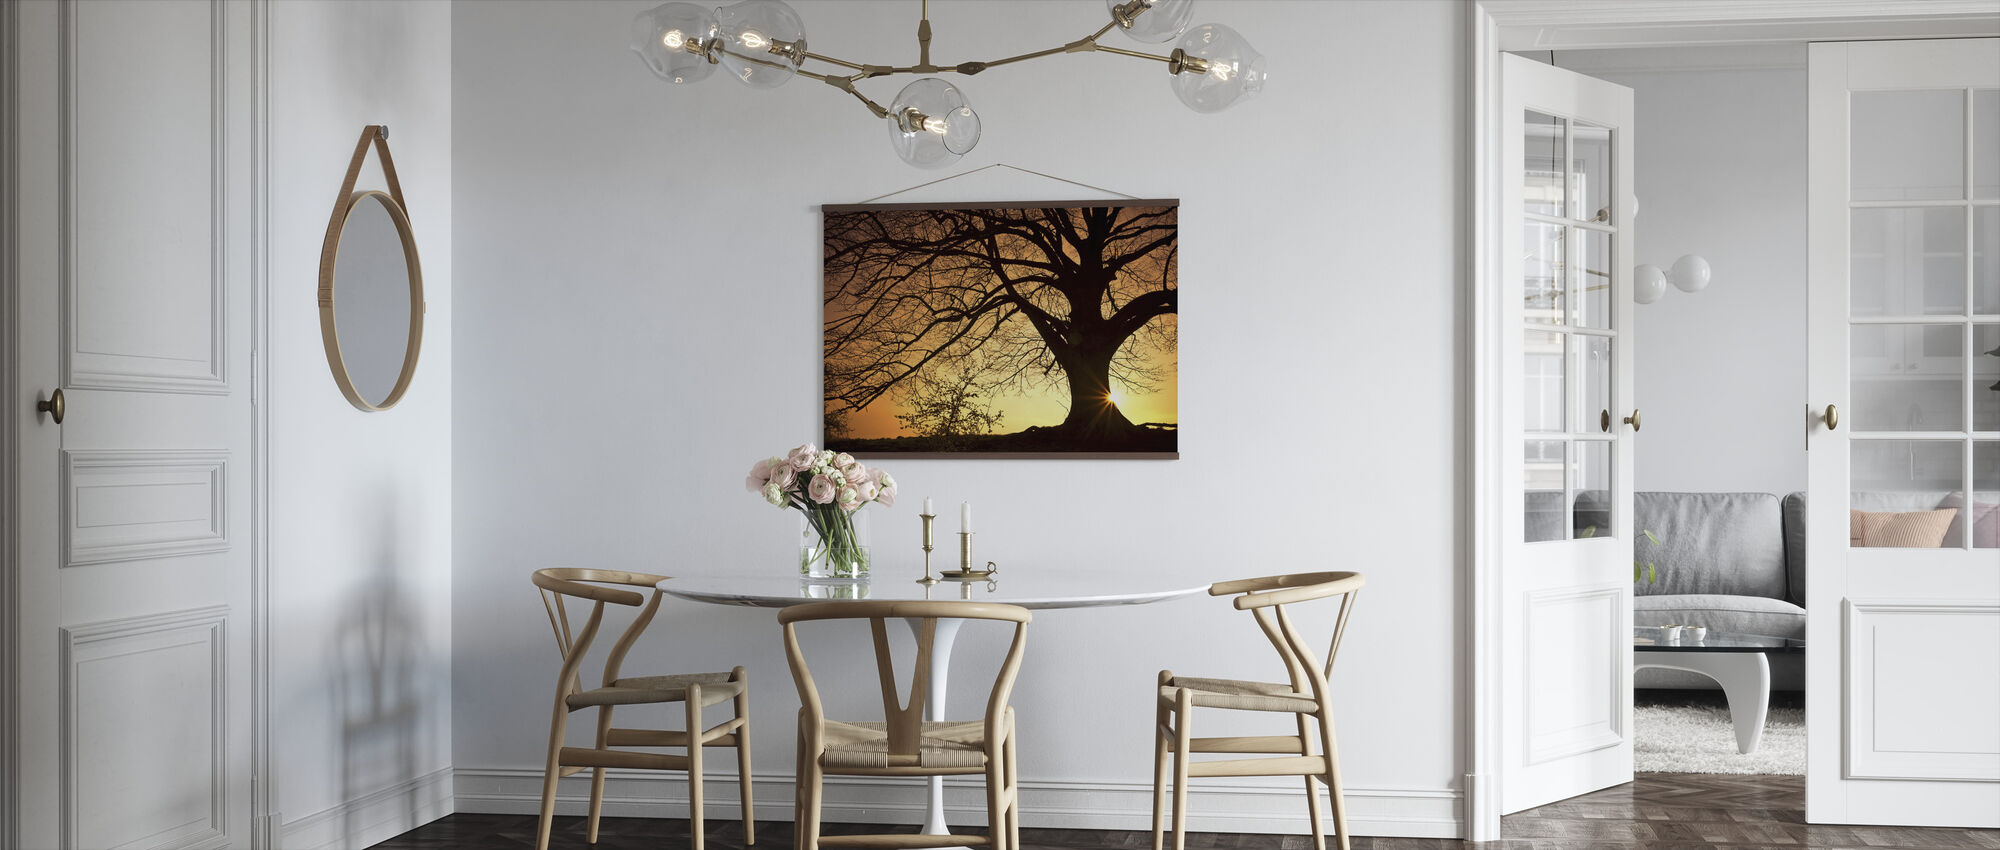 Silouette of a Willow Tree - Poster - Kitchen